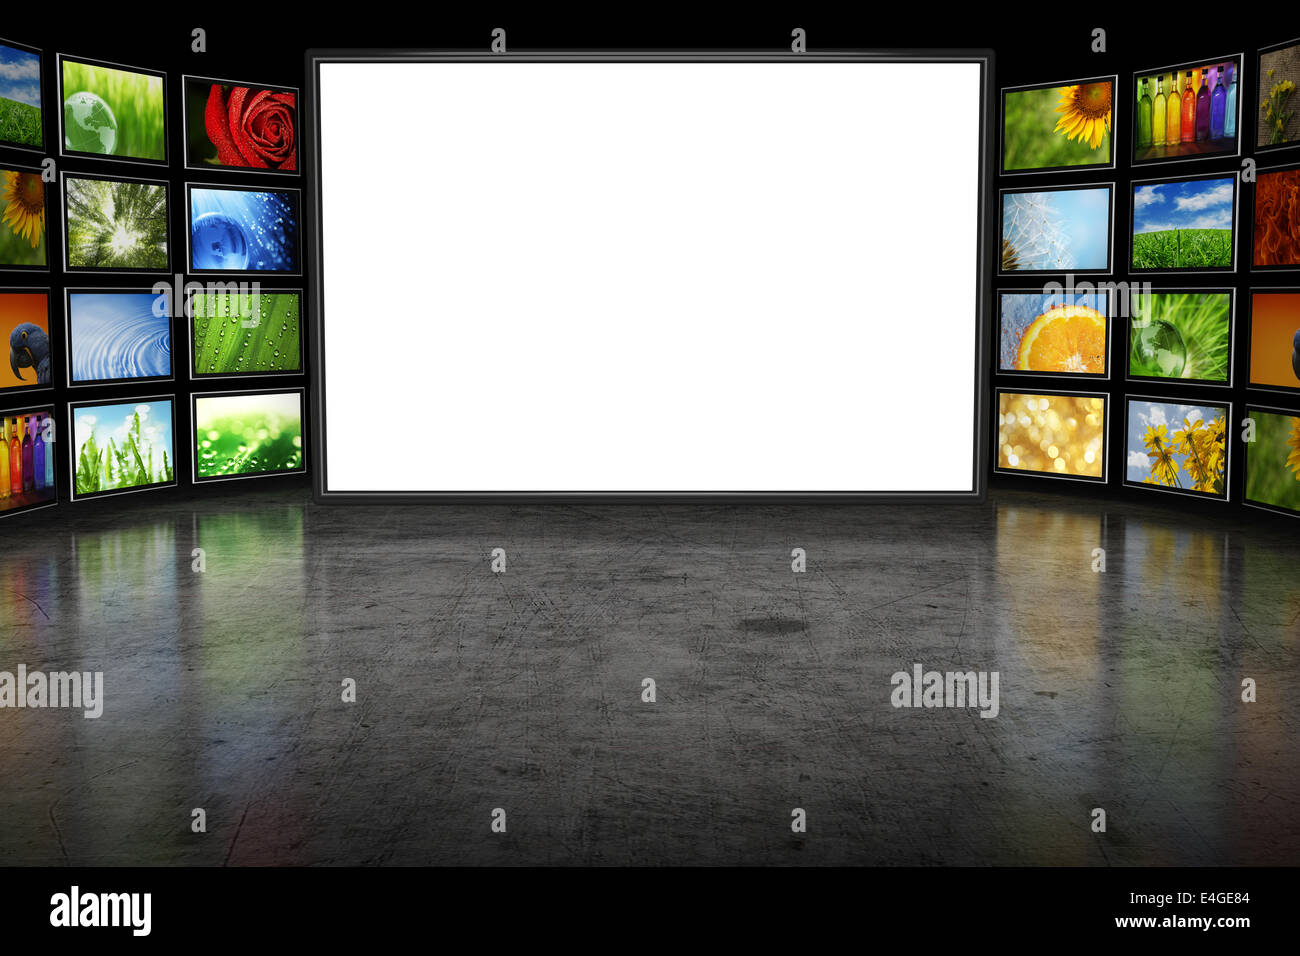 tv screeen with images stock photo 71662532 alamy